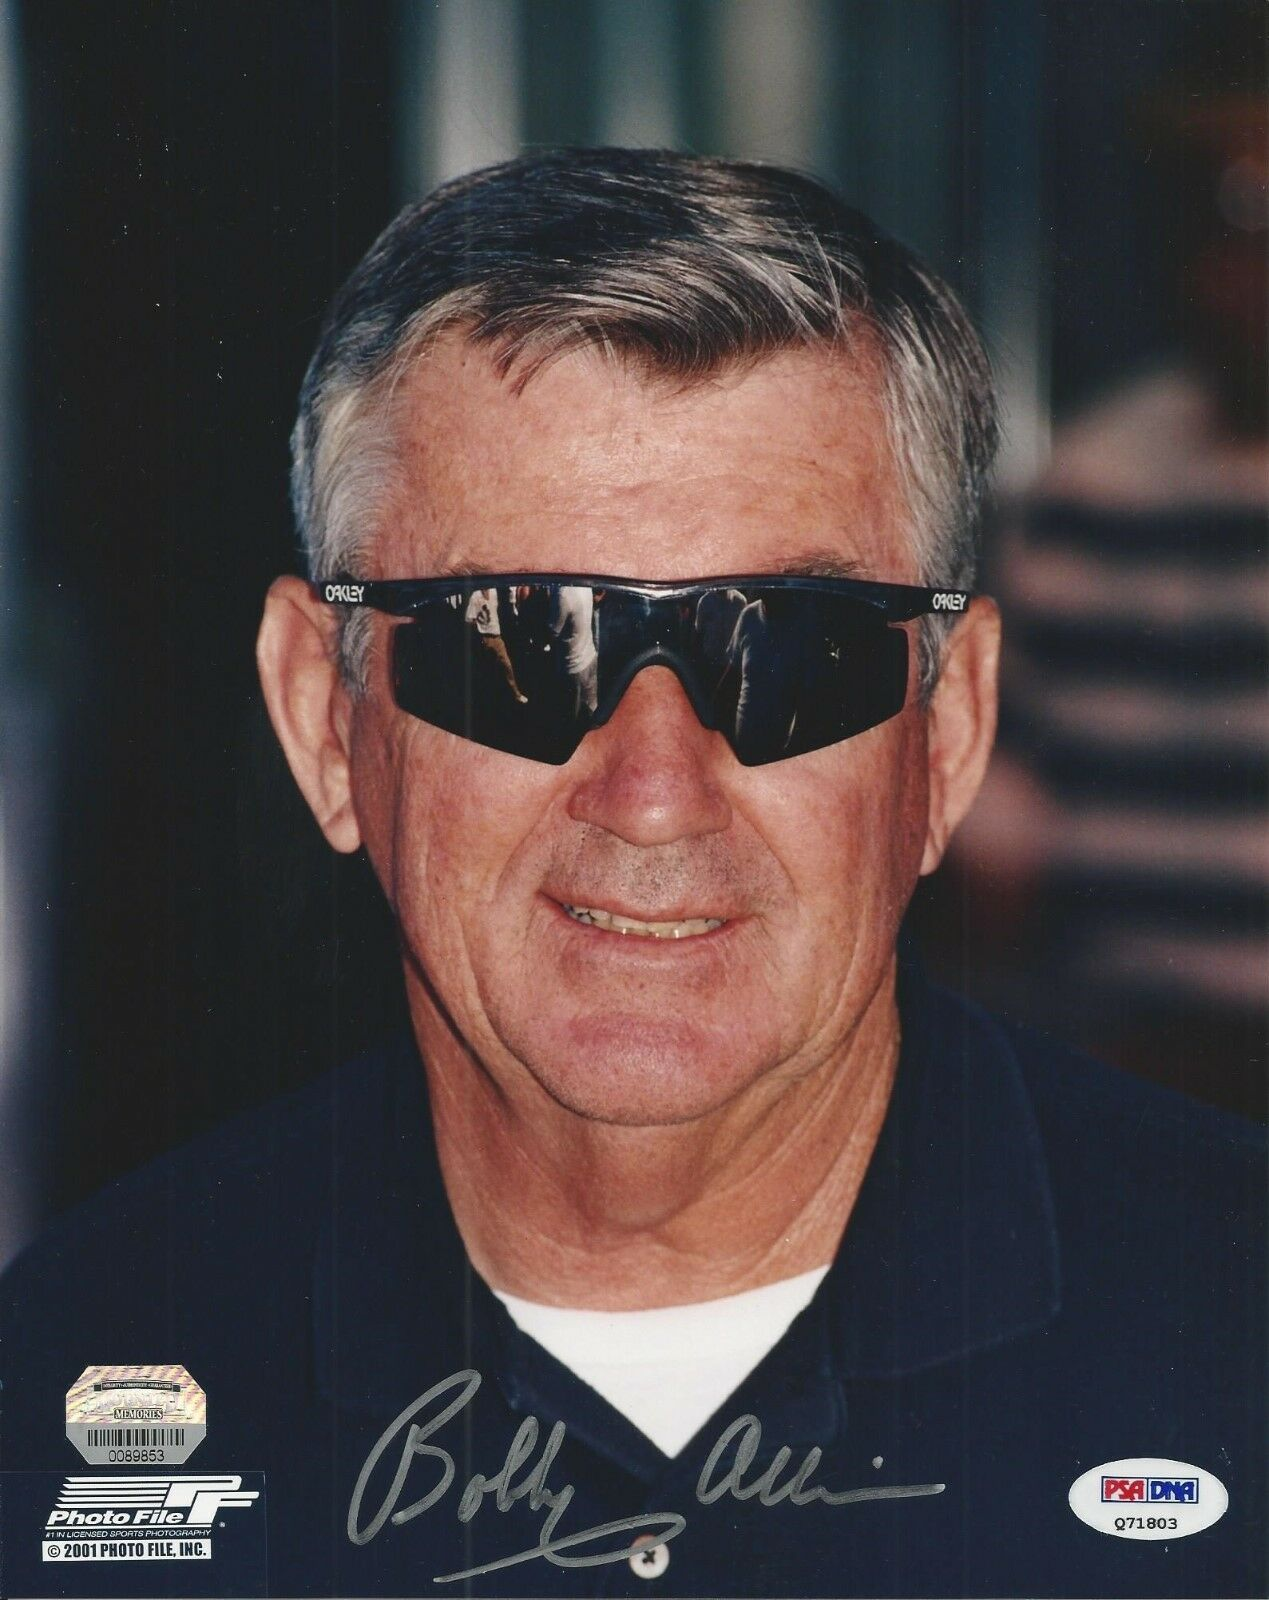 Bobby Allison Signed Nascar 8x10 Photo PSA/DNA # Q71803